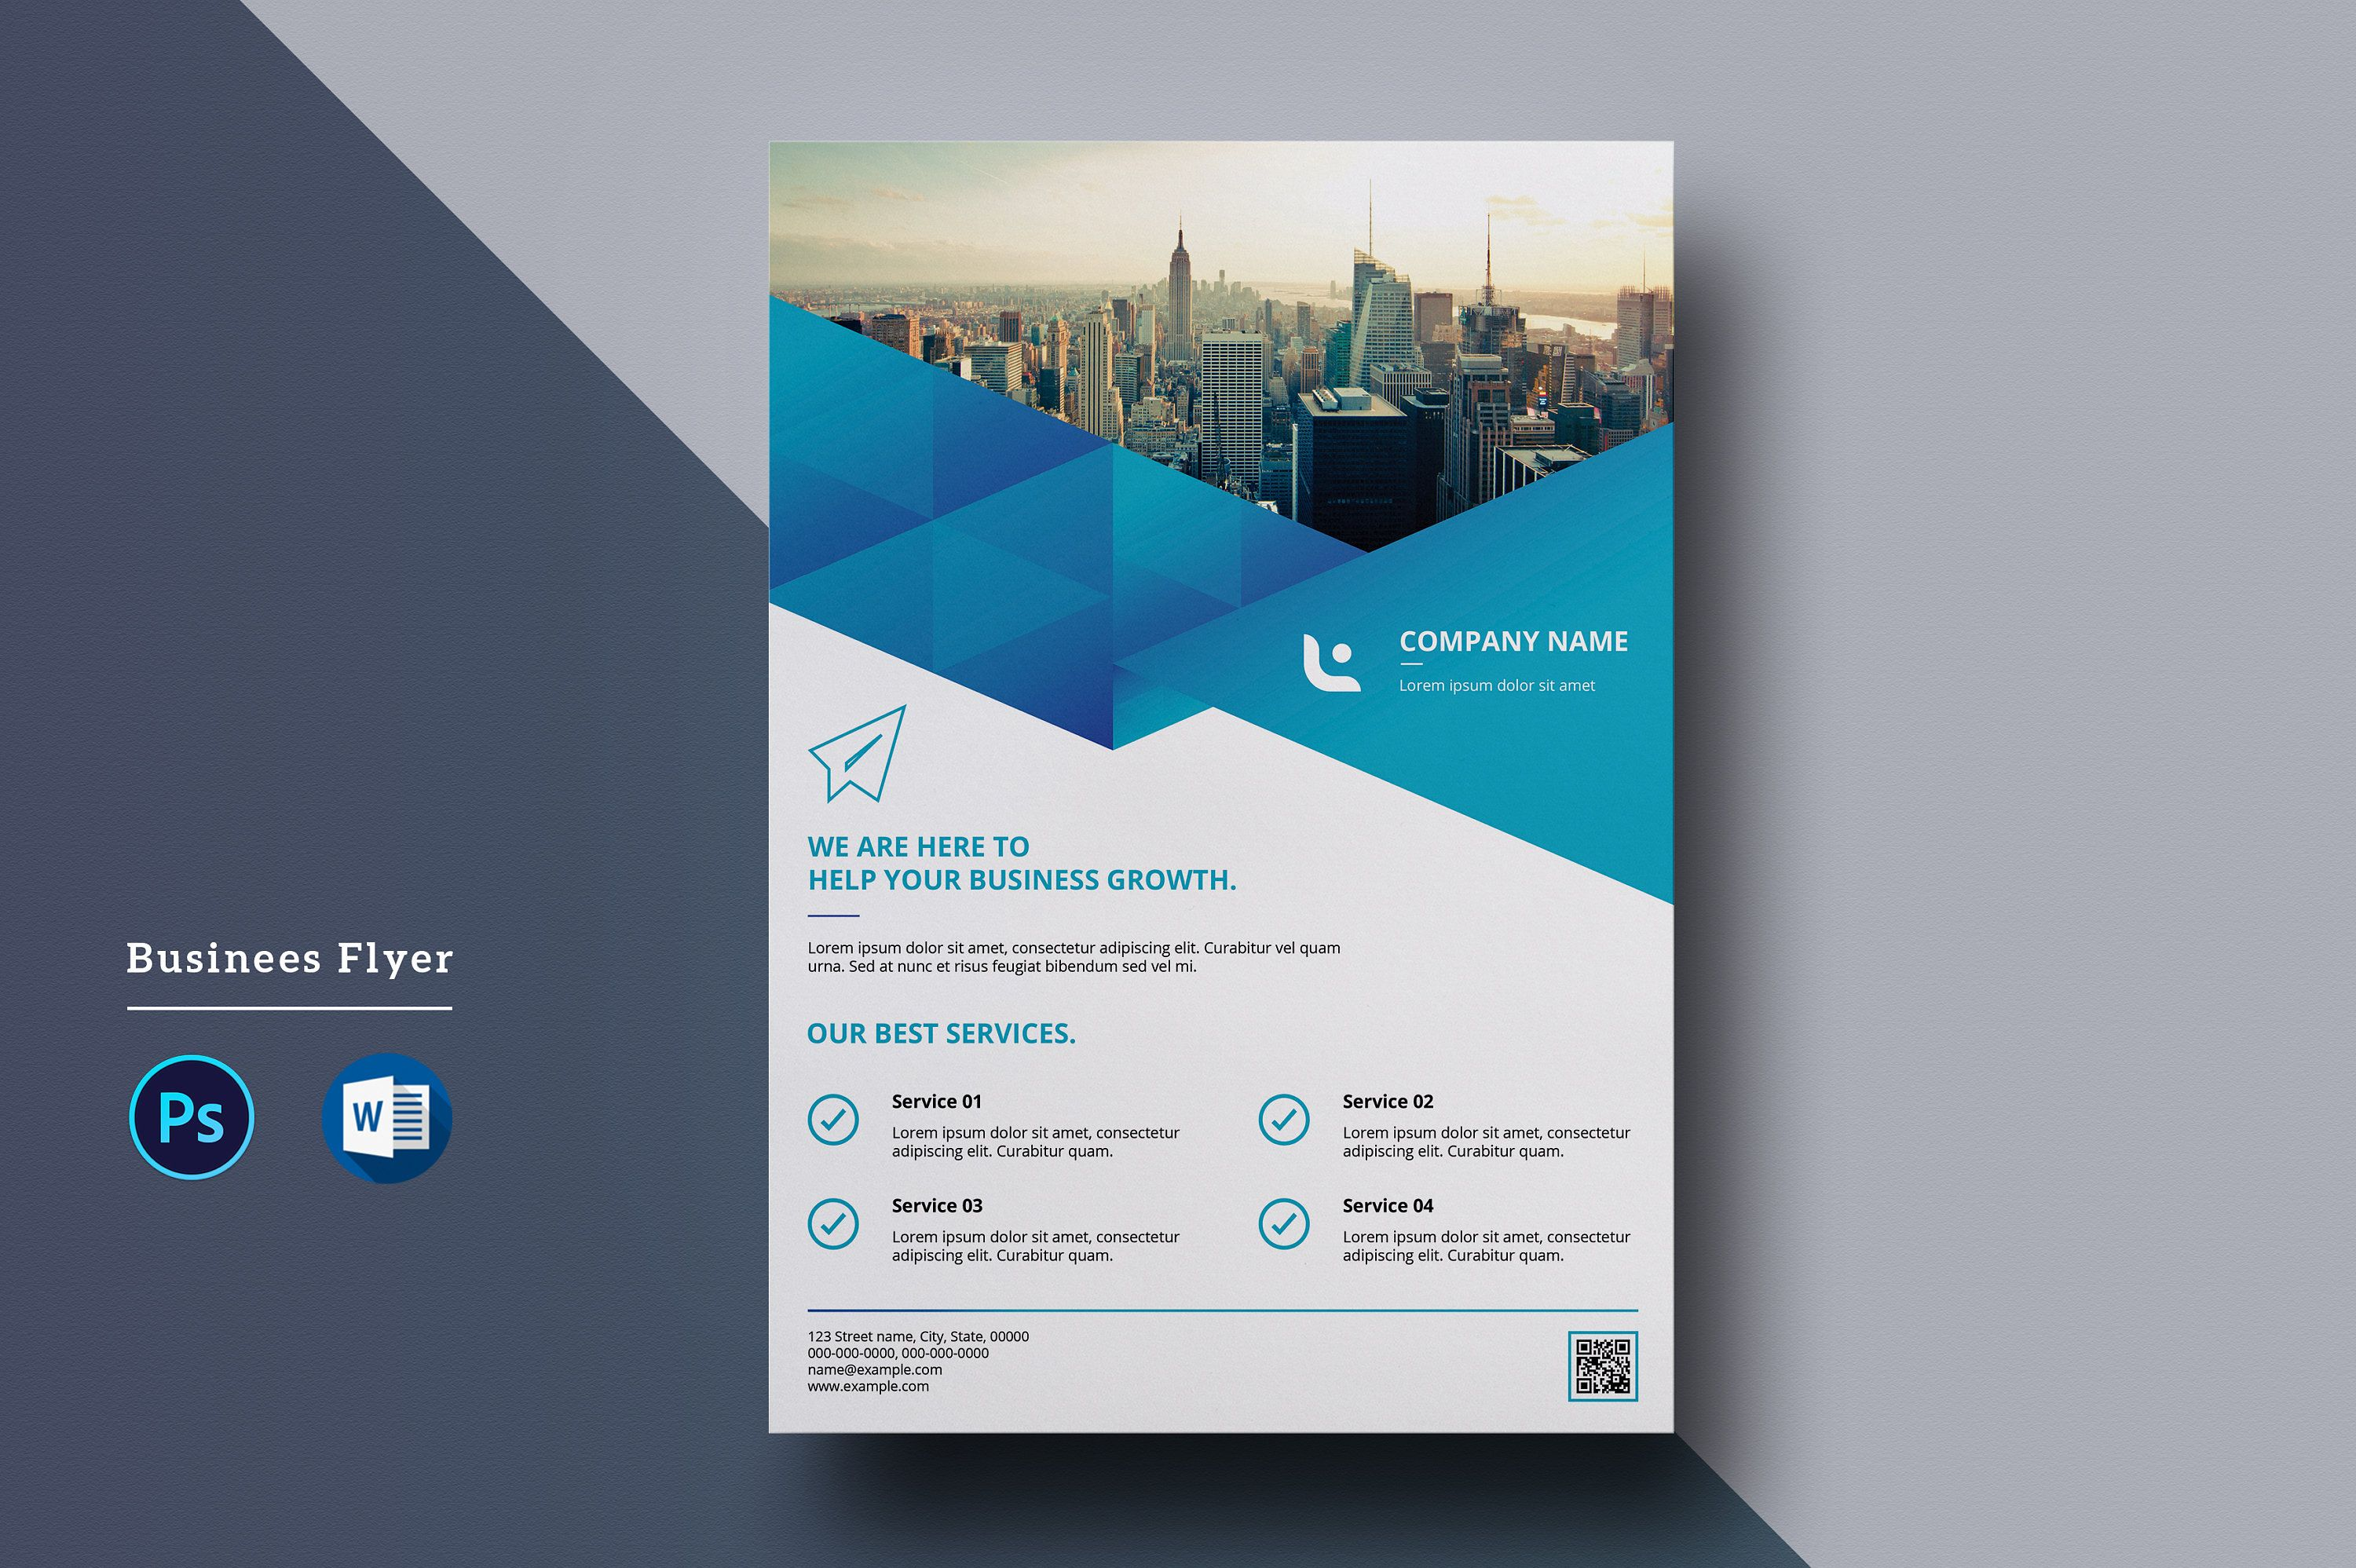 Corporate Flyer Template A4 Business Flyer Ms Word And Etsy Flyer Template Business Flyer Templates Corporate Flyer Free microsoft word flyer templates